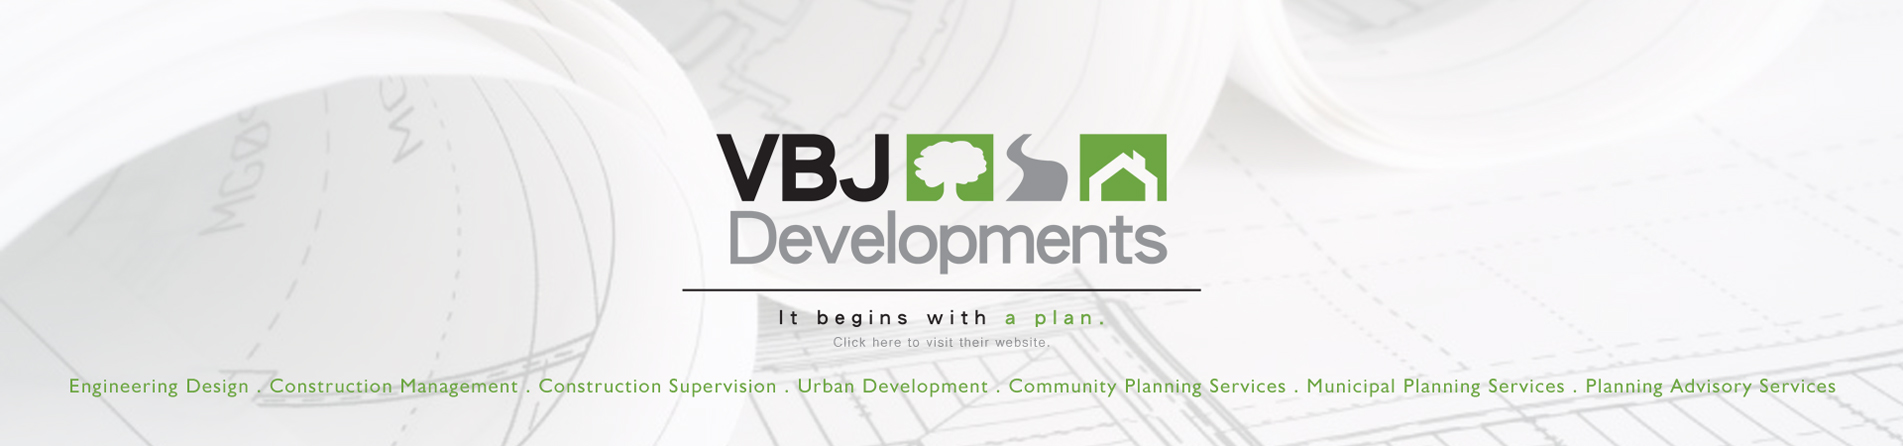 VBJ Developments